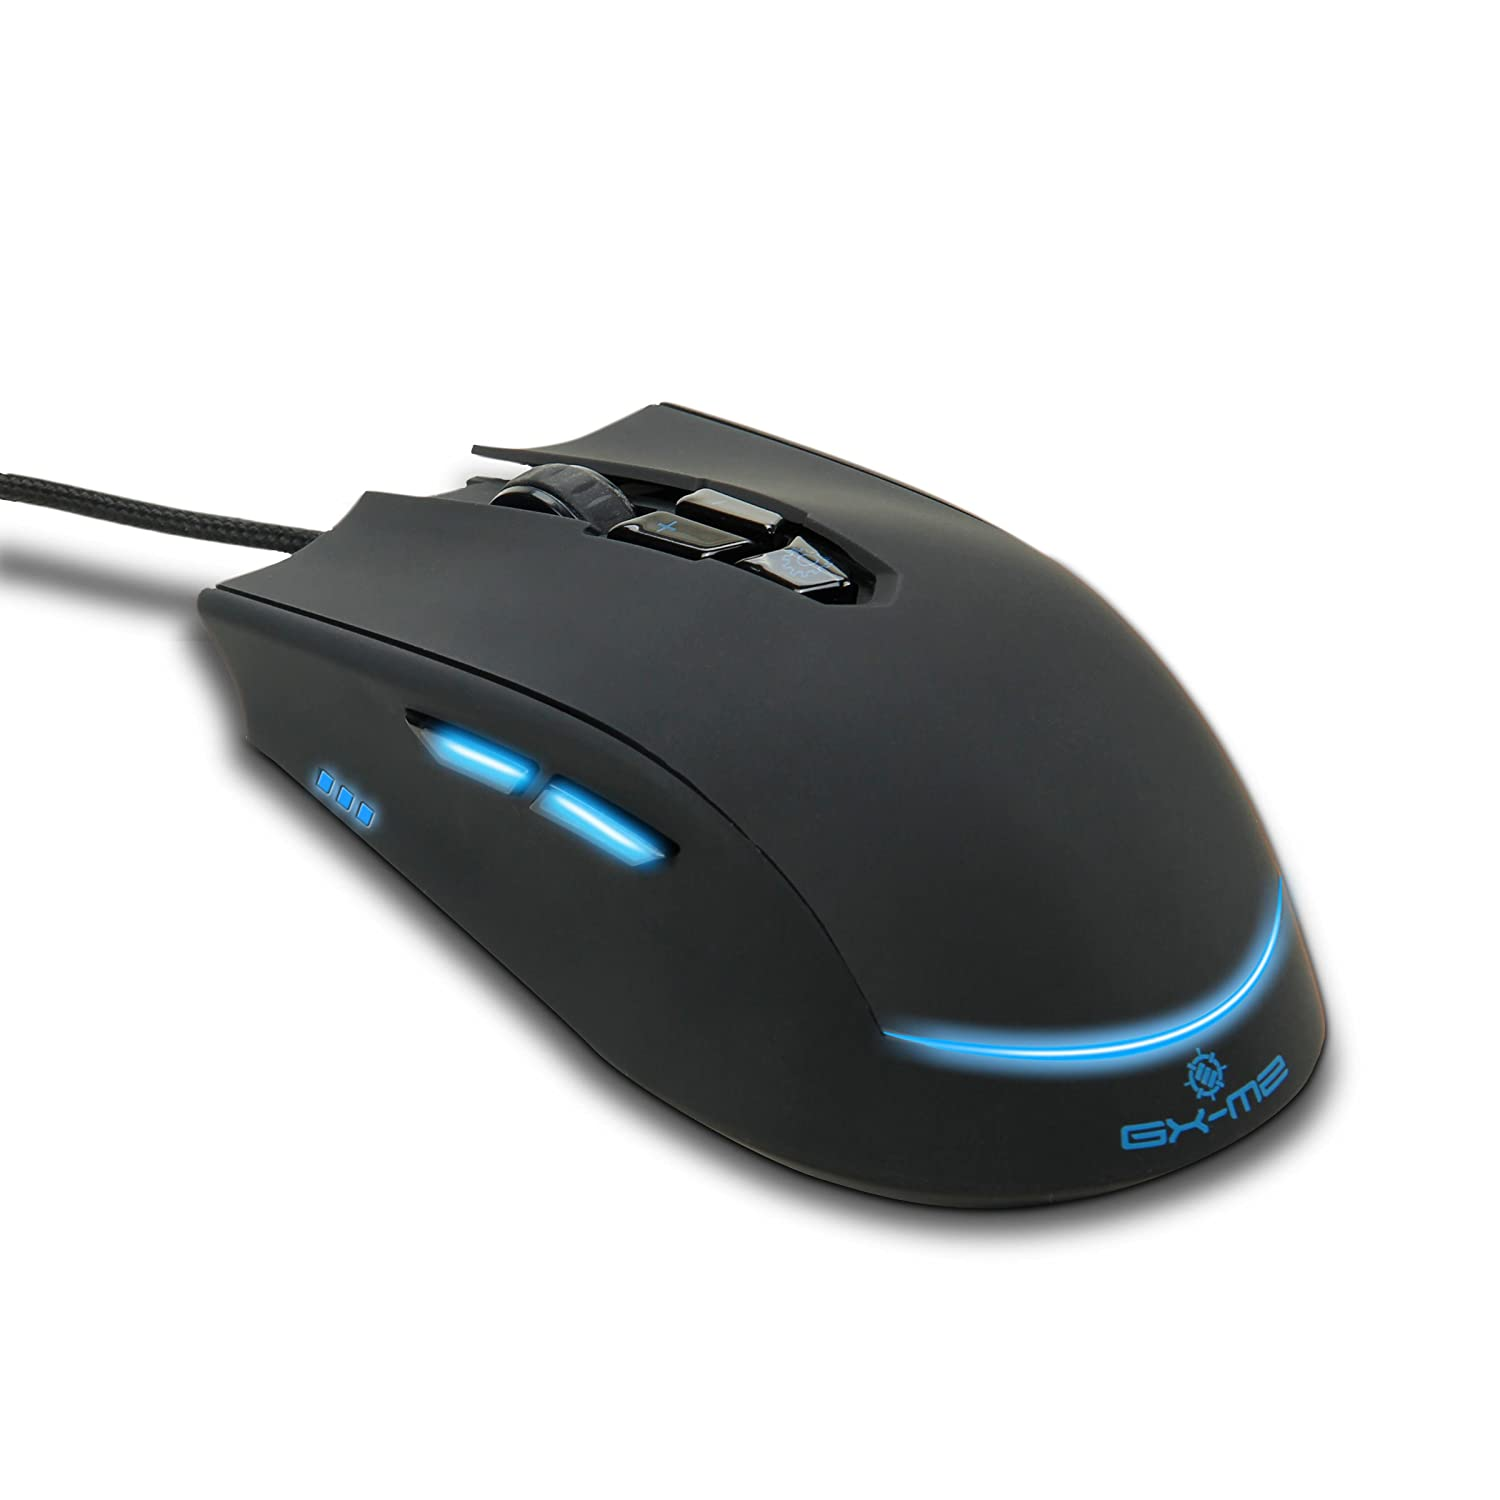 Targus amw14eu 8-button laser wireless mouse drivers download.